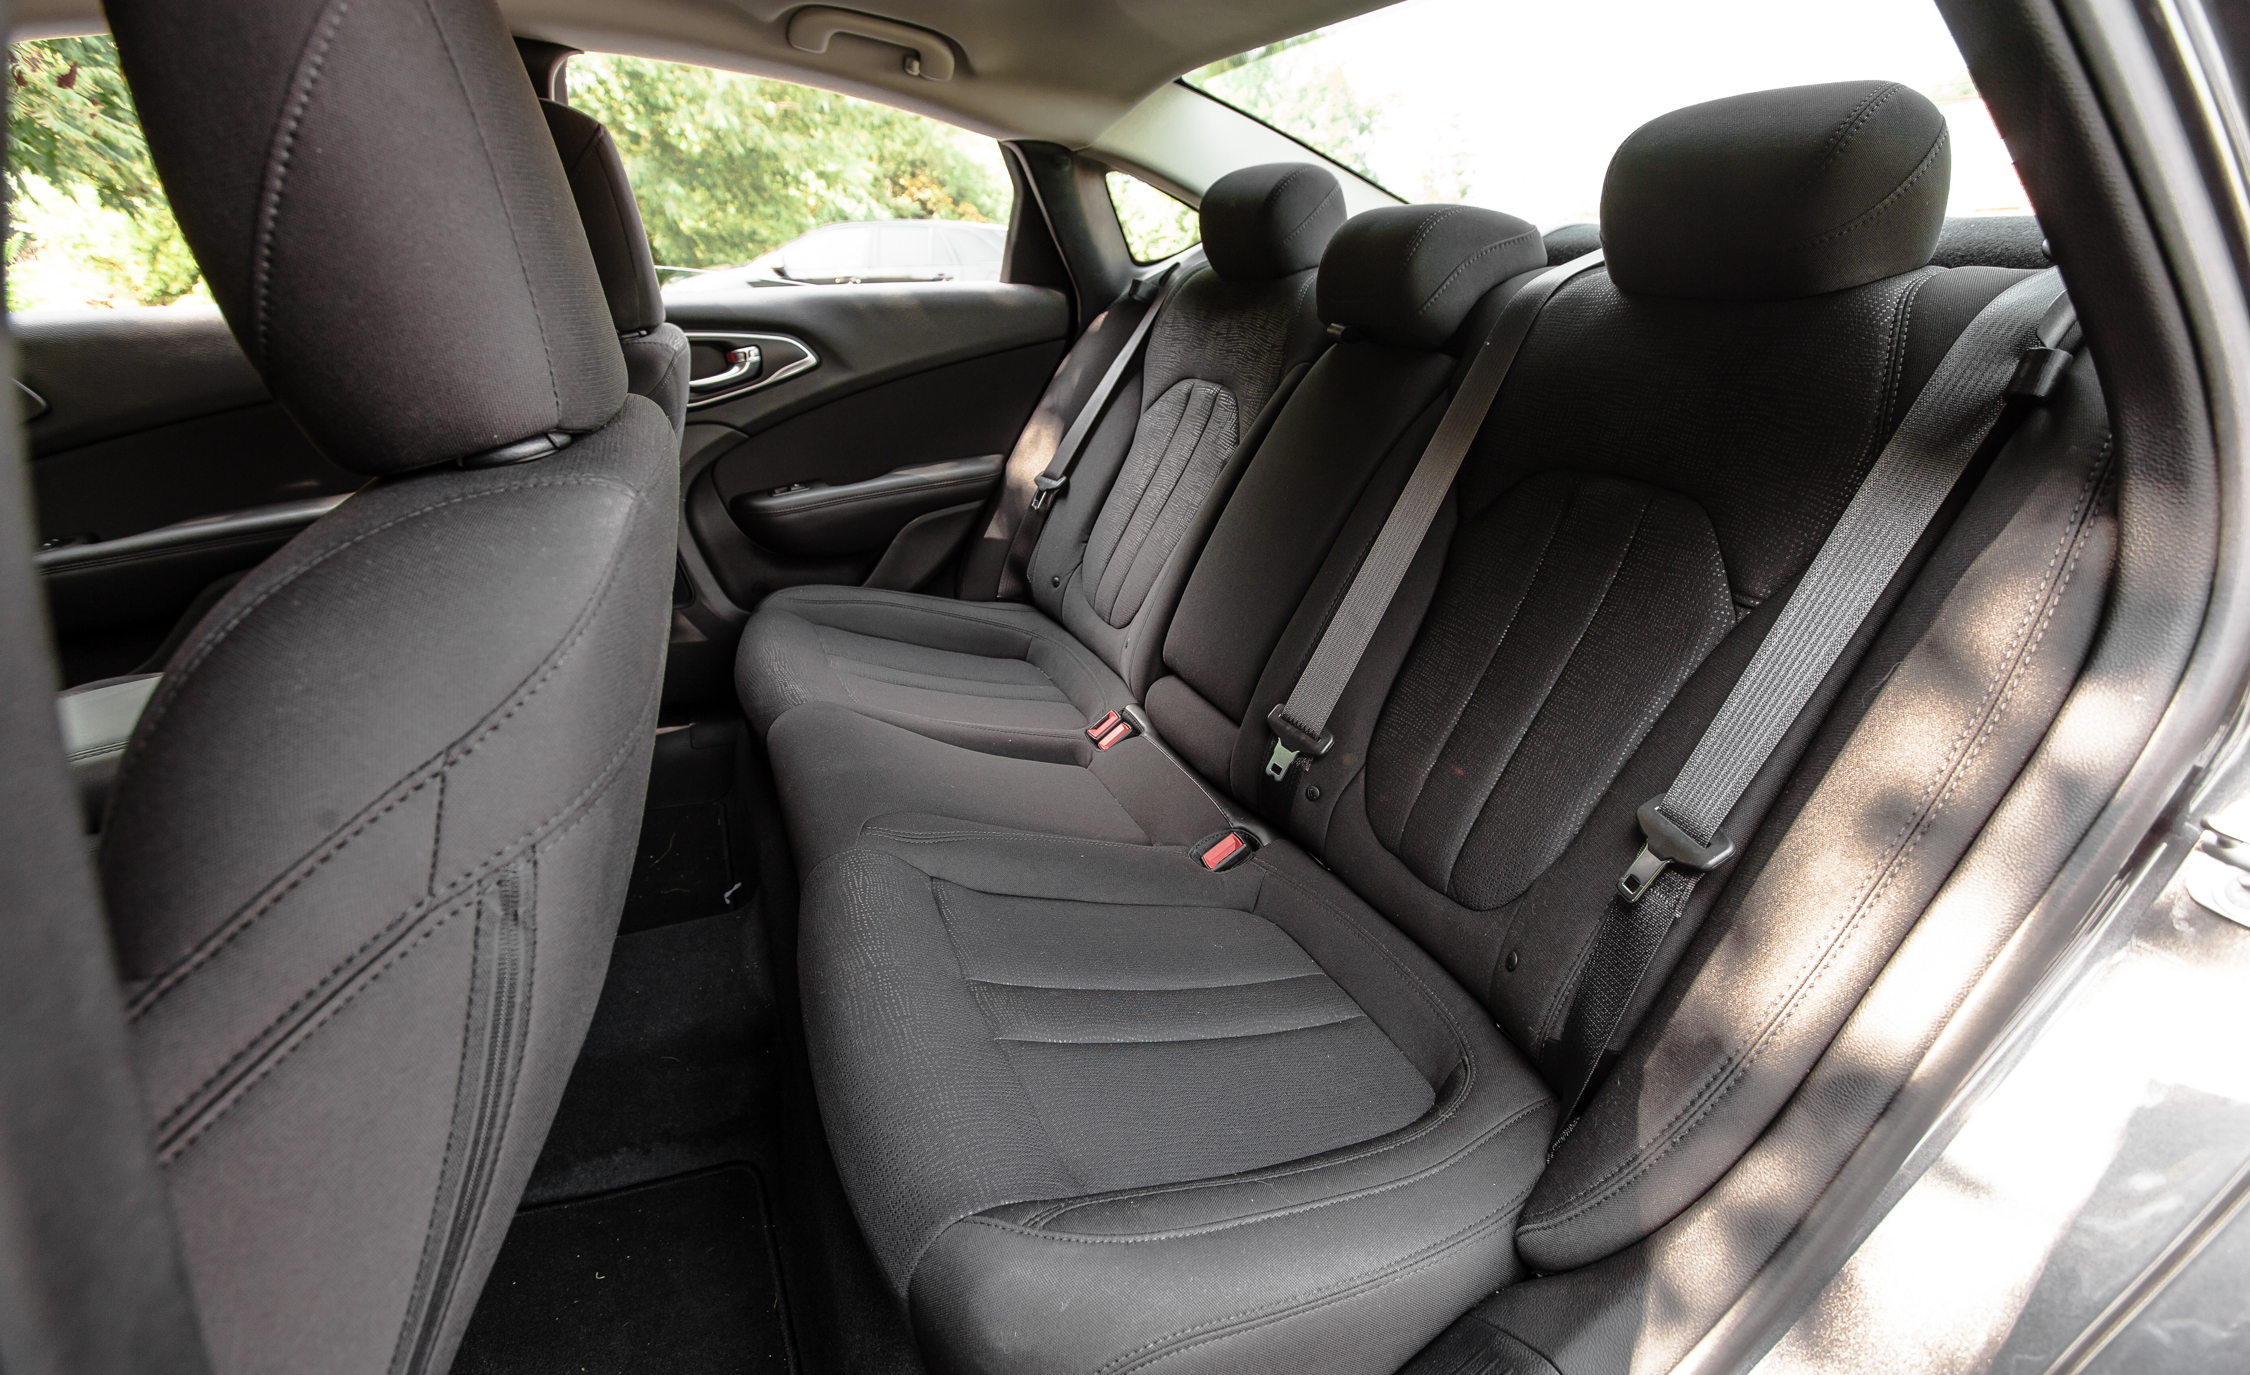 2015 Chrysler 200 Limited Interior (View 8 of 19)